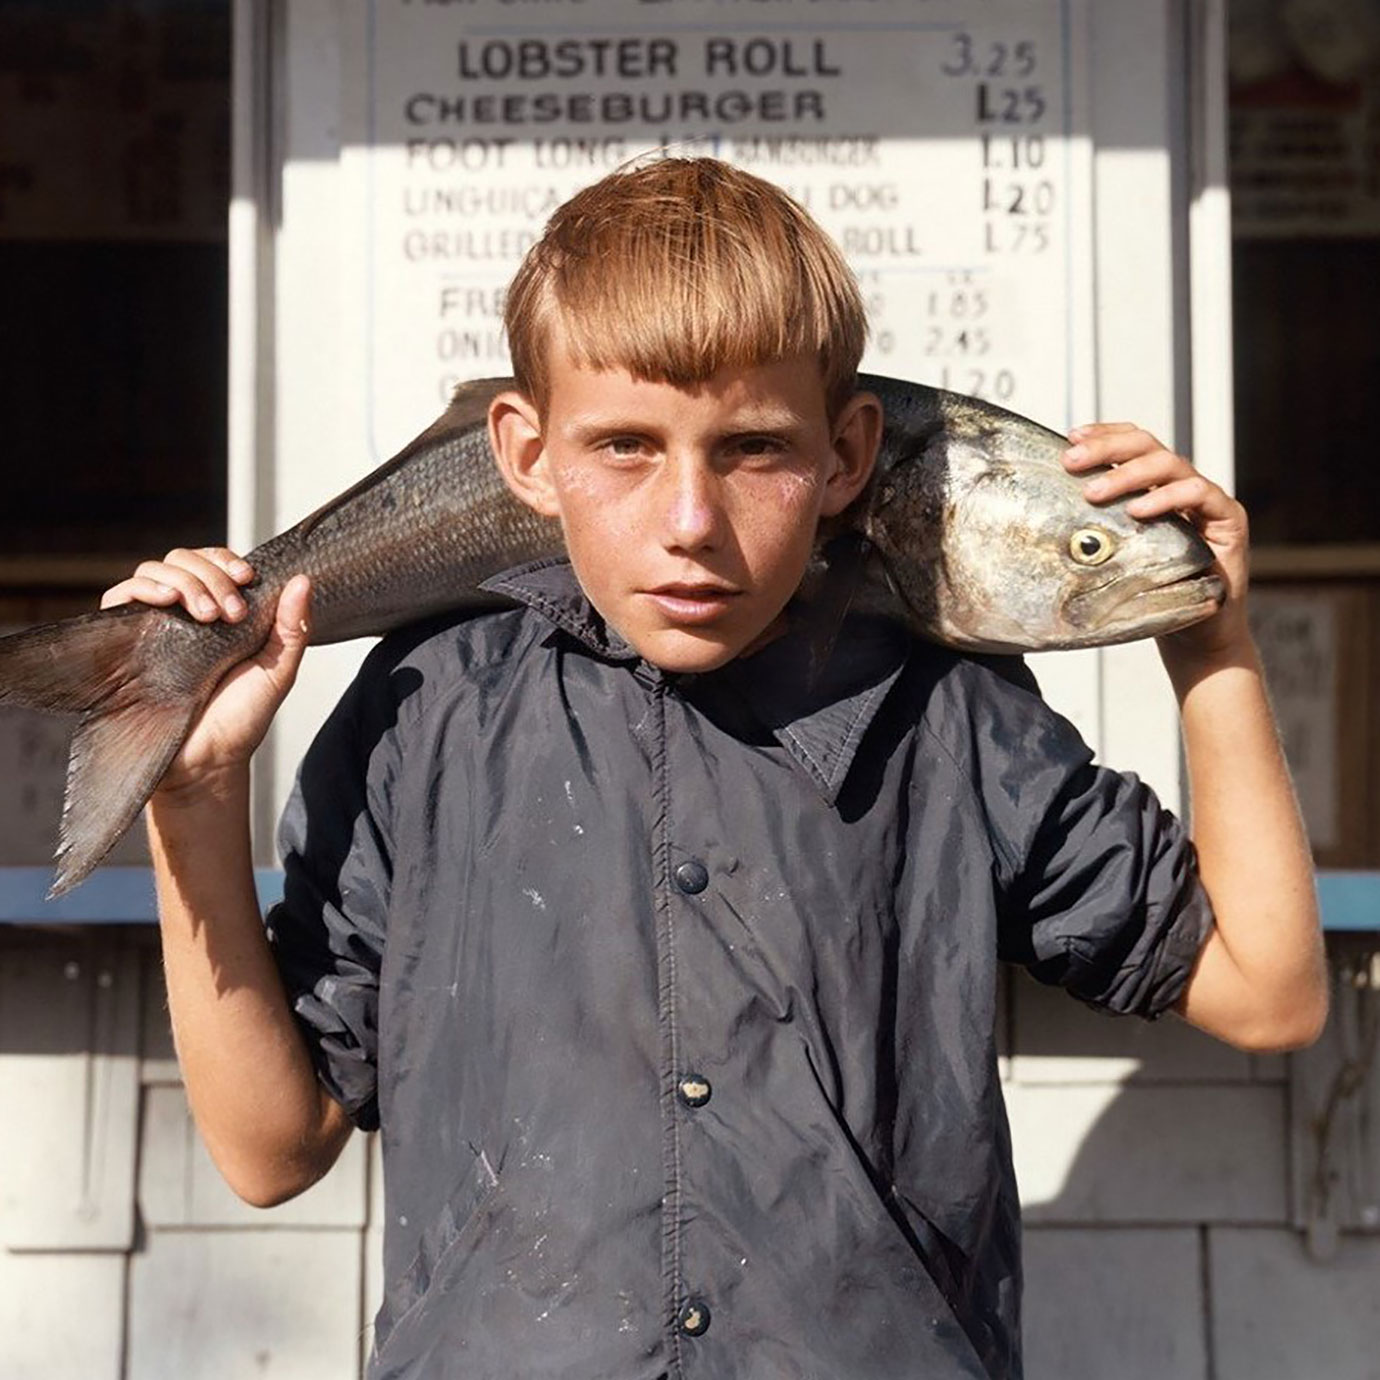 A boy carrying a fish.